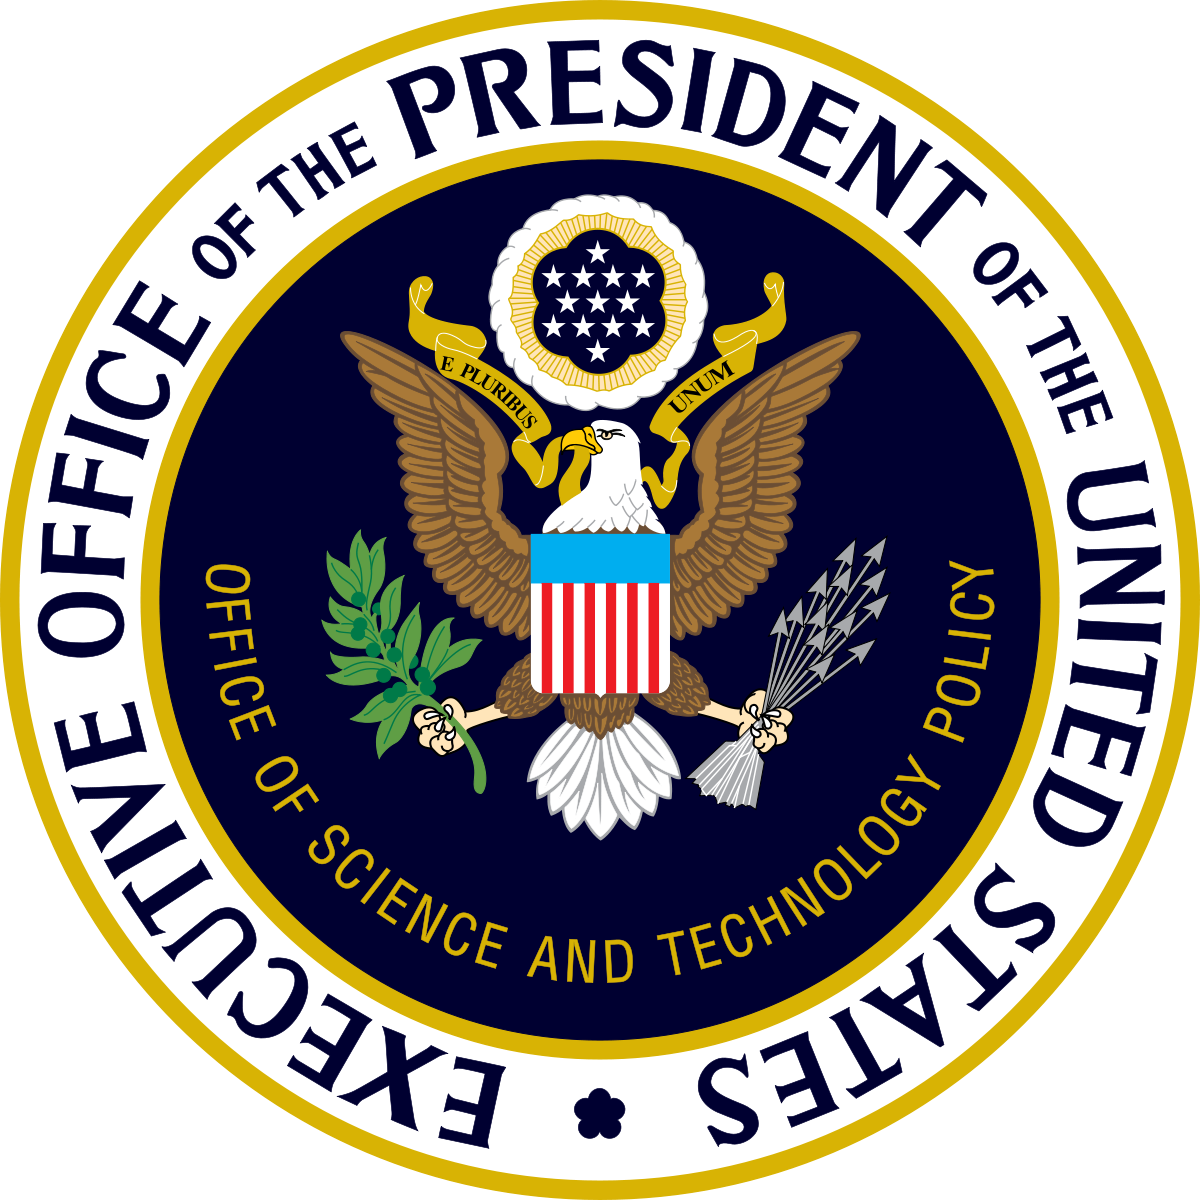 National Science and Technology Council.